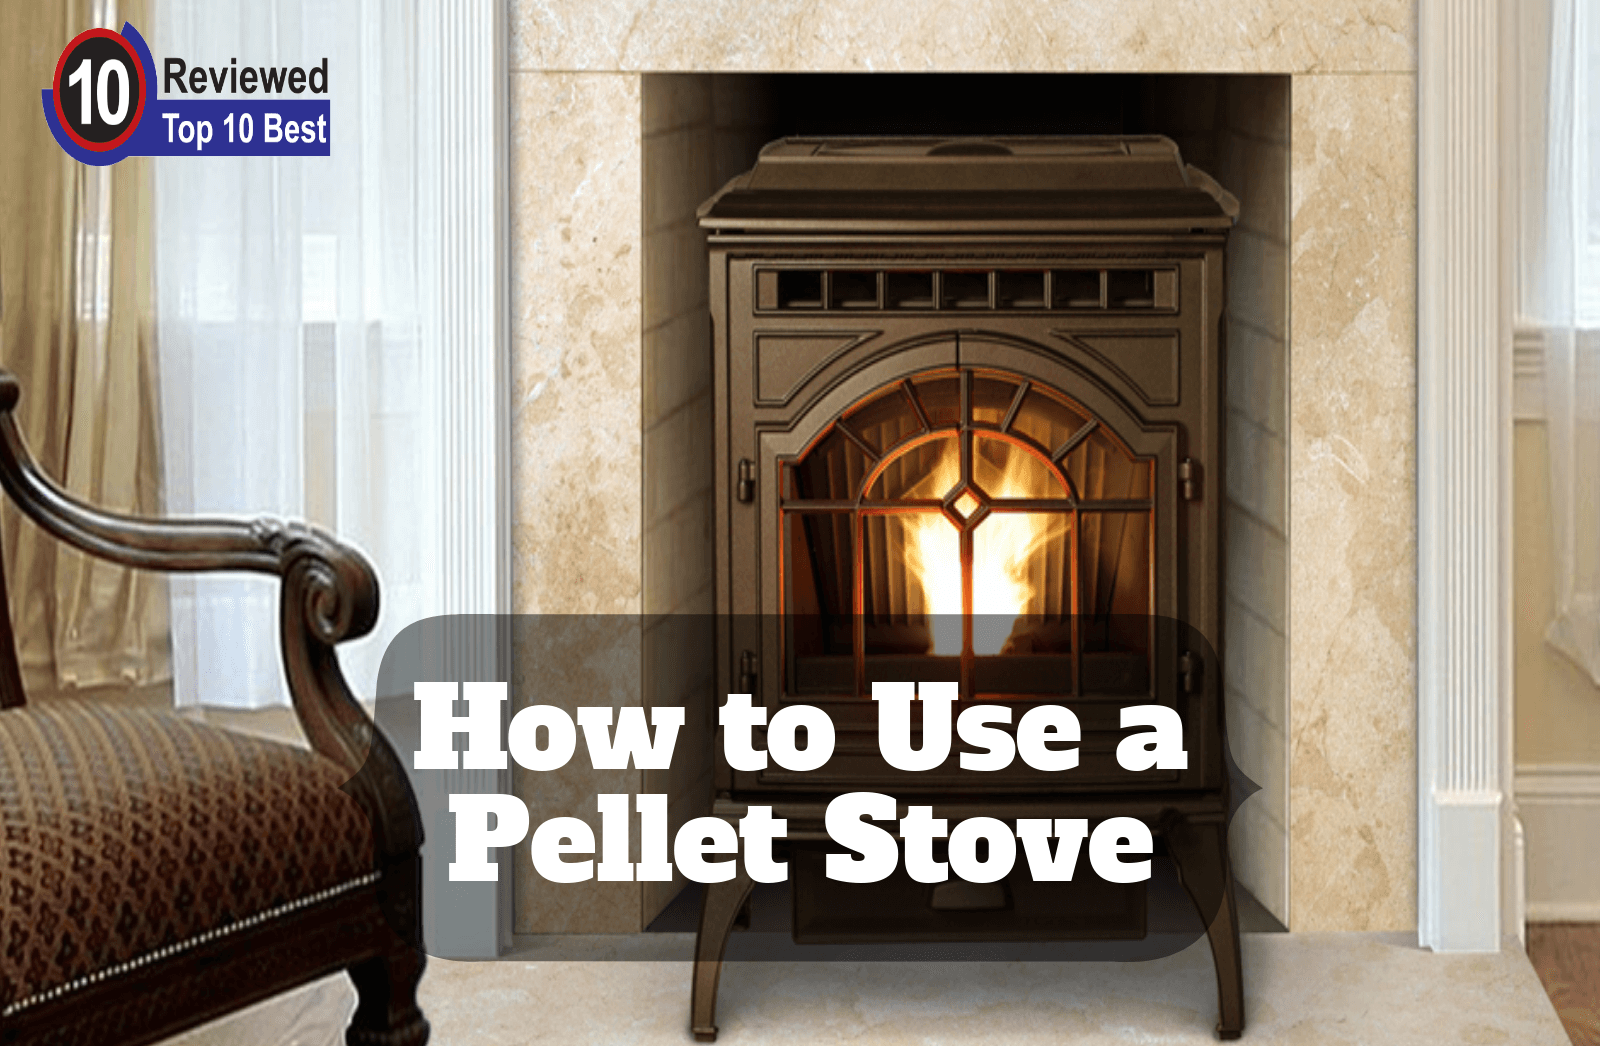 How to Use a Pellet Stove